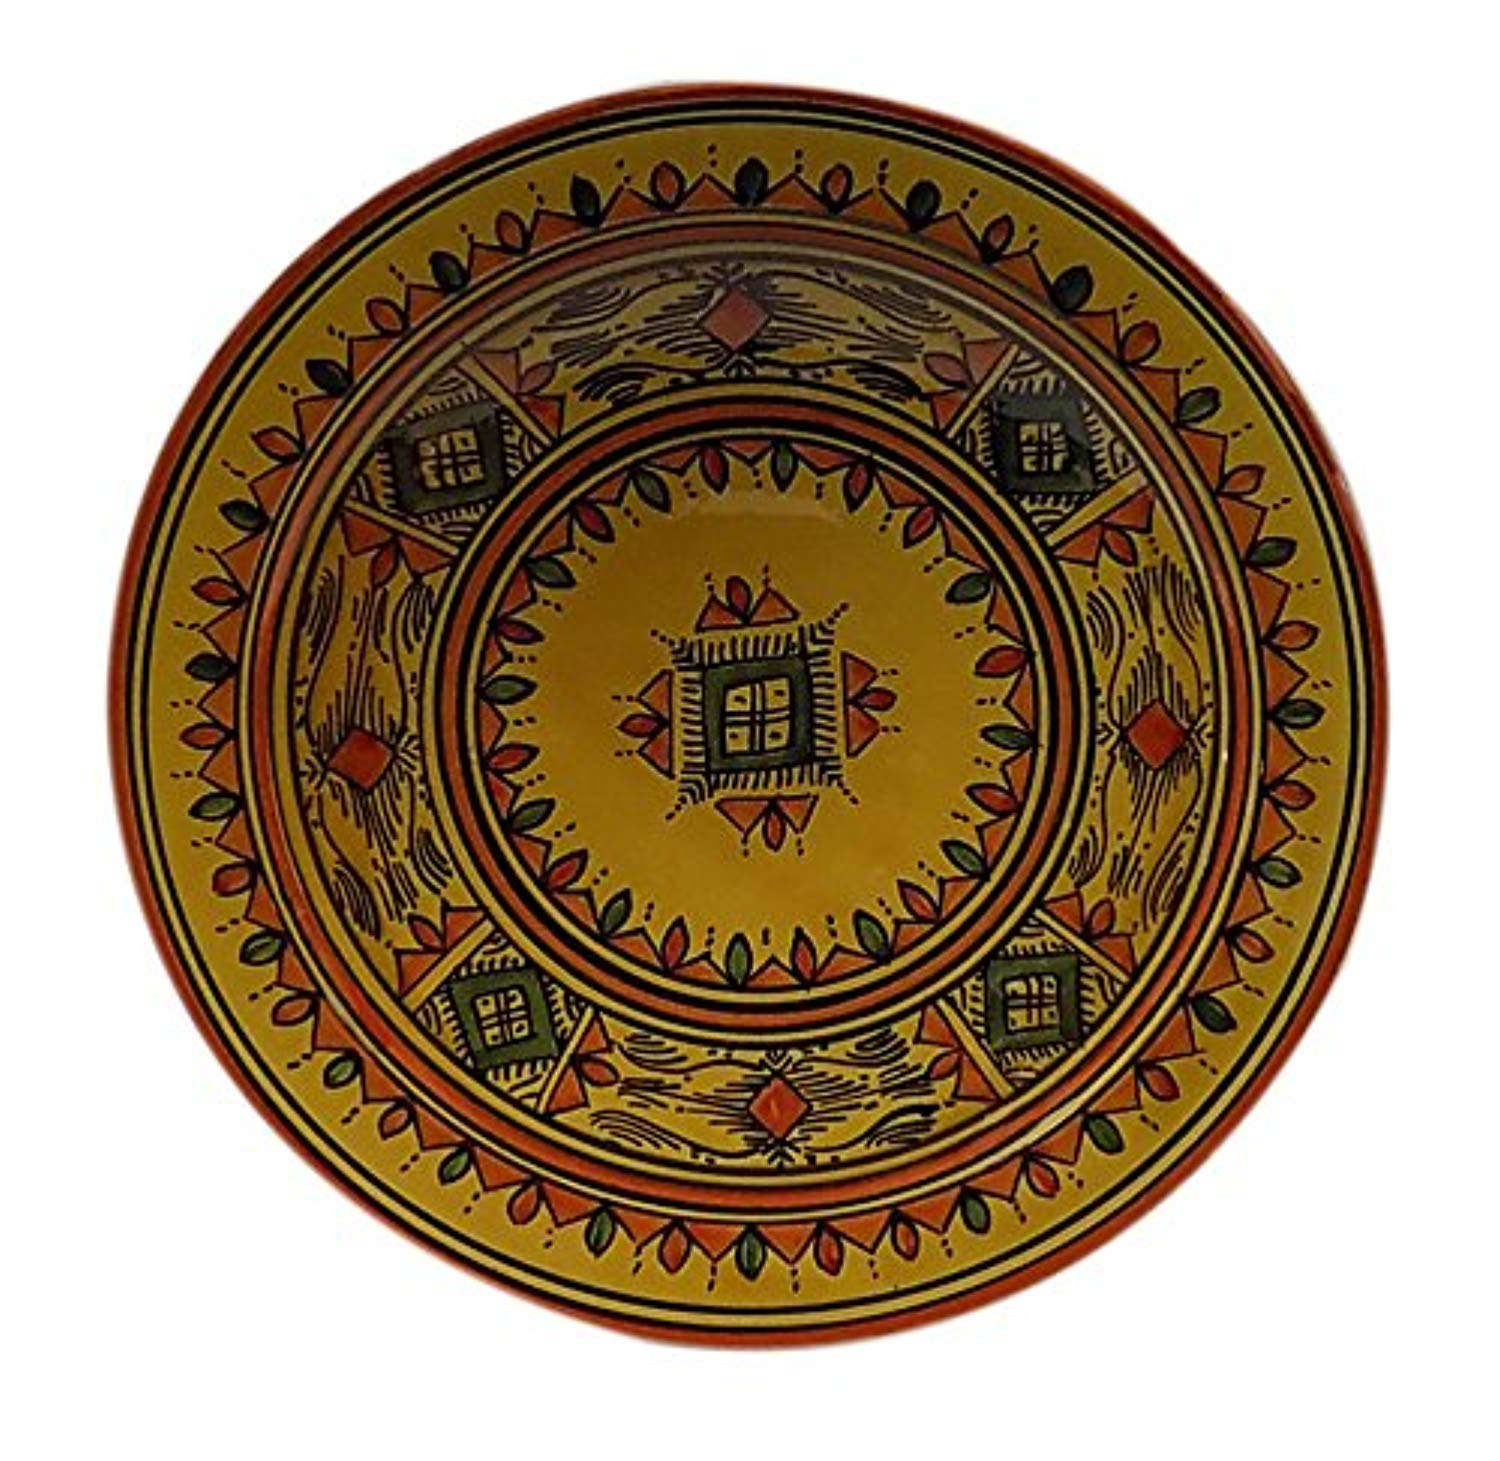 Ceramic Plates Moroccan Handmade Serving, Wall Hanging, Exquisite Colors Decorative 14 inches Diameter - Ufumbuzi - Home